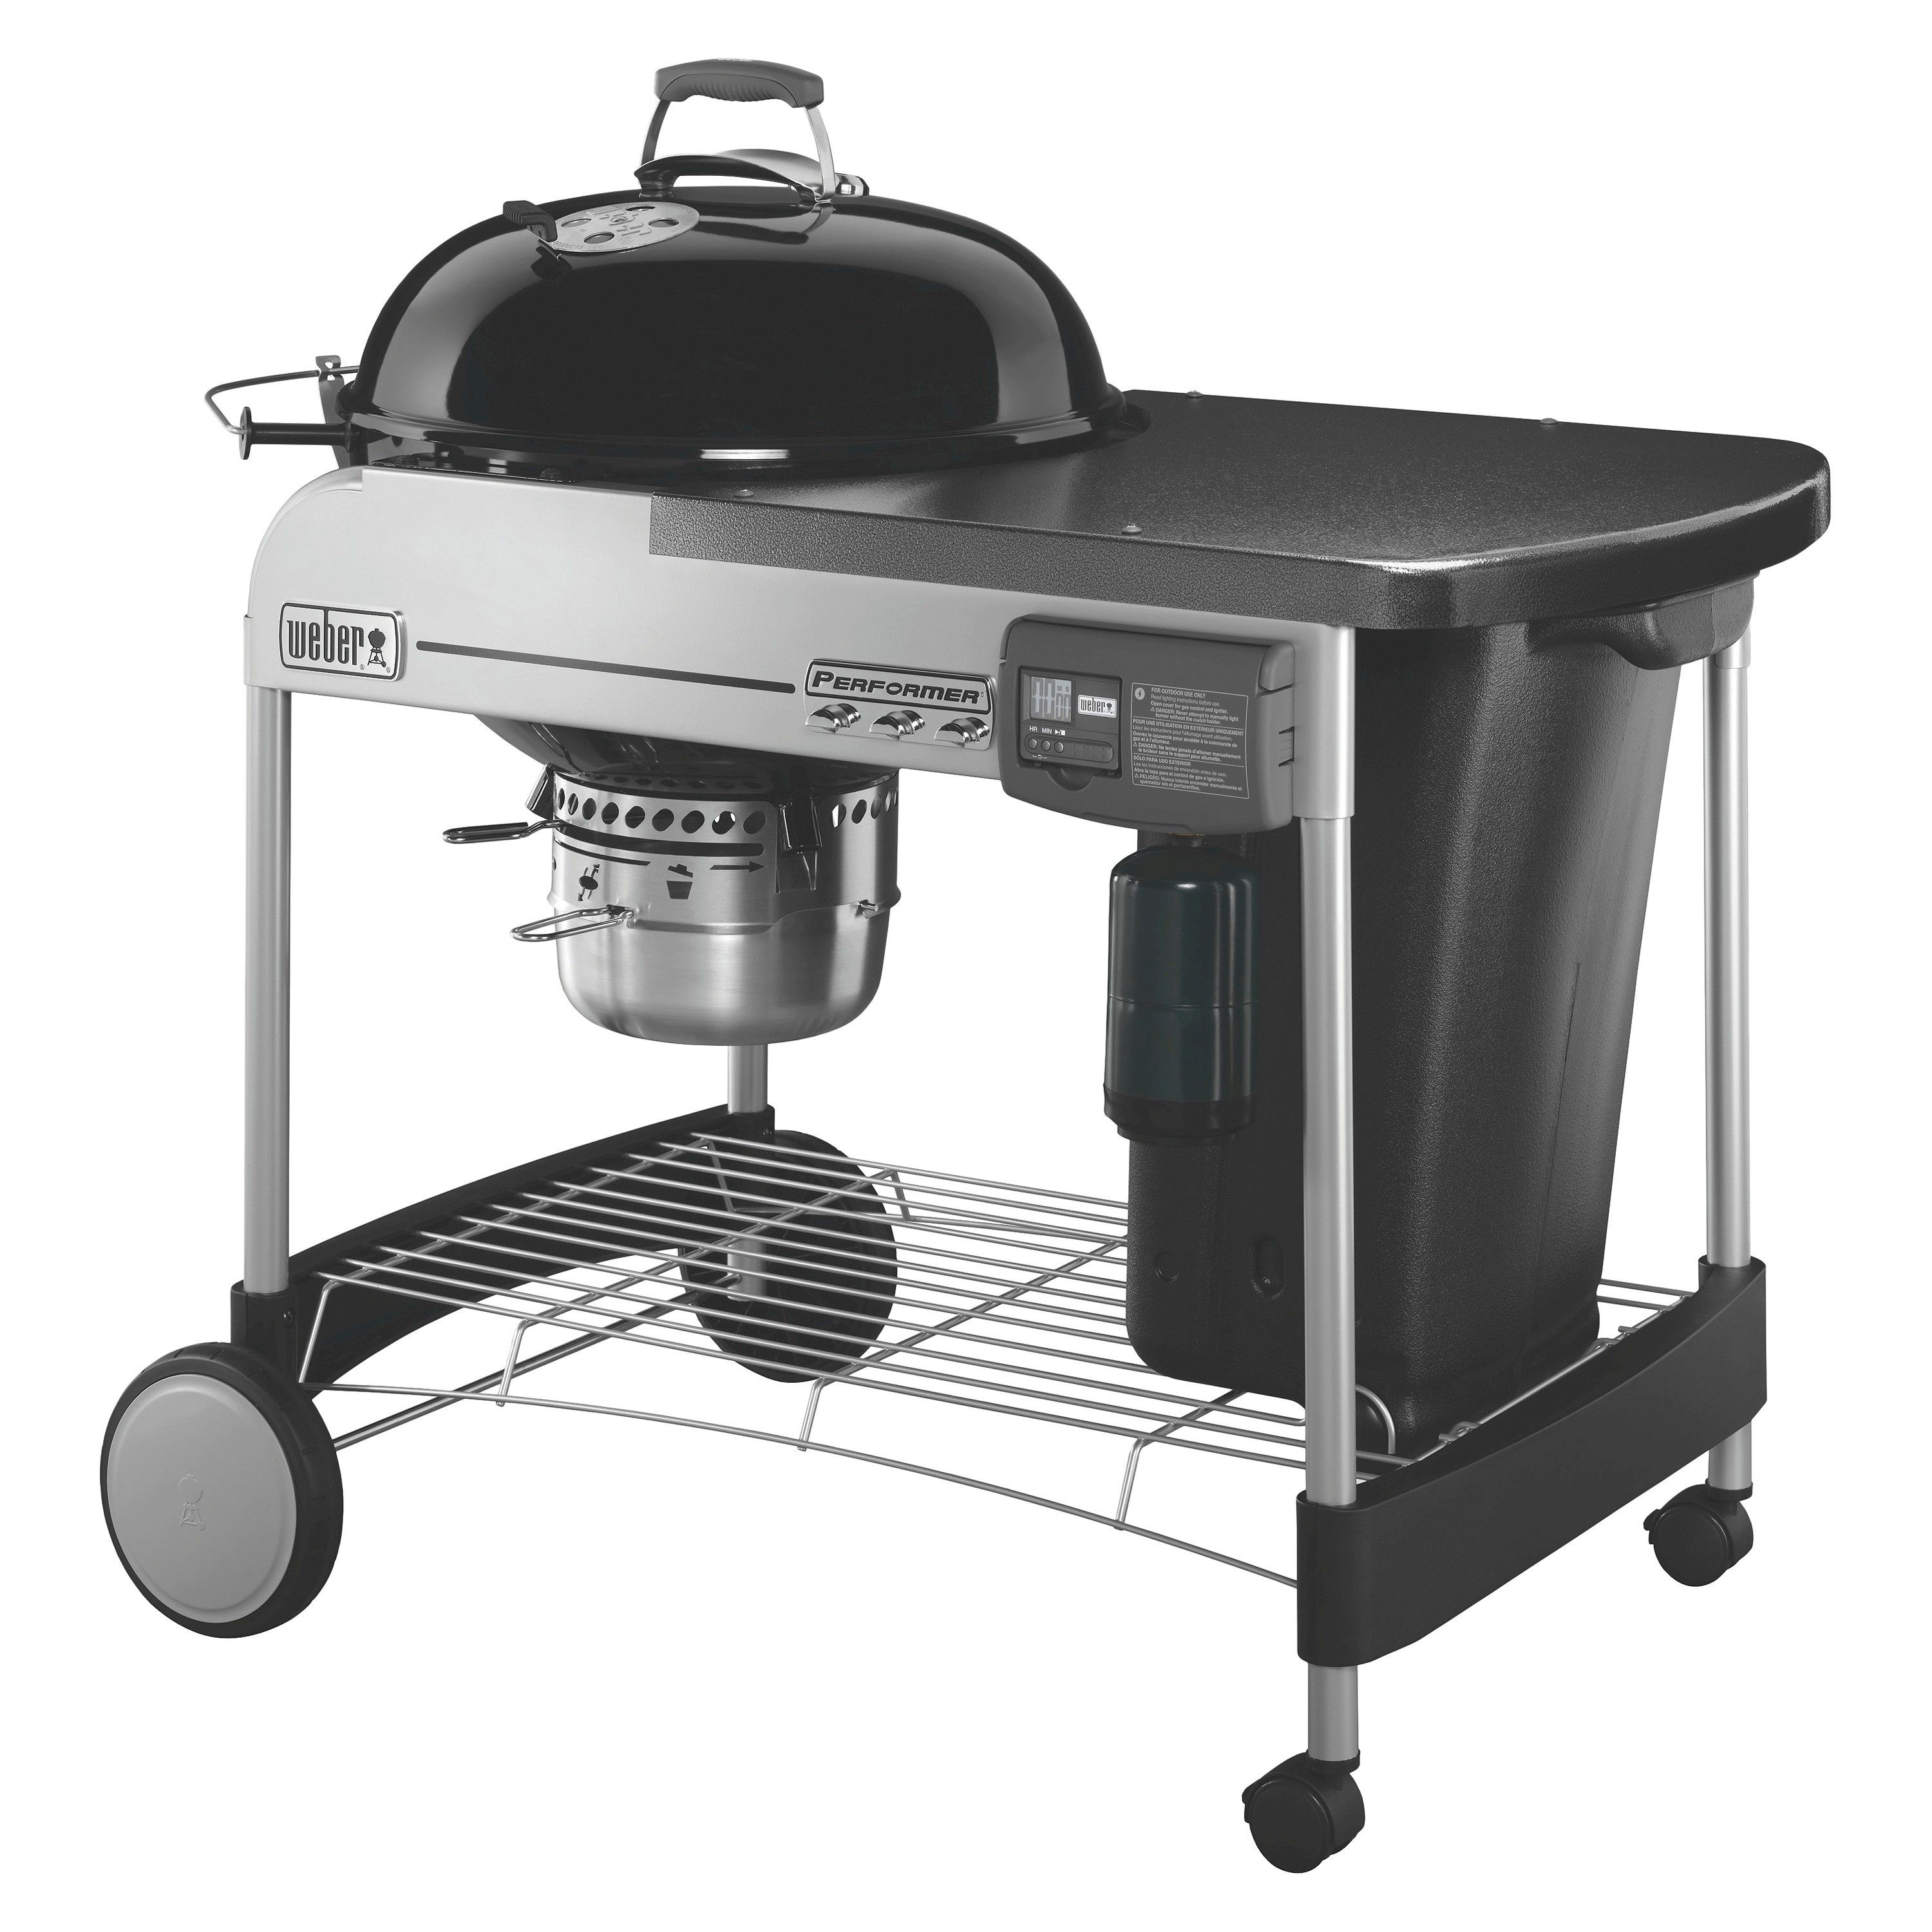 Weber 15501001 Performer Deluxe Charcoal Grill Black Charcoal Grill Kettle Grills Grilling